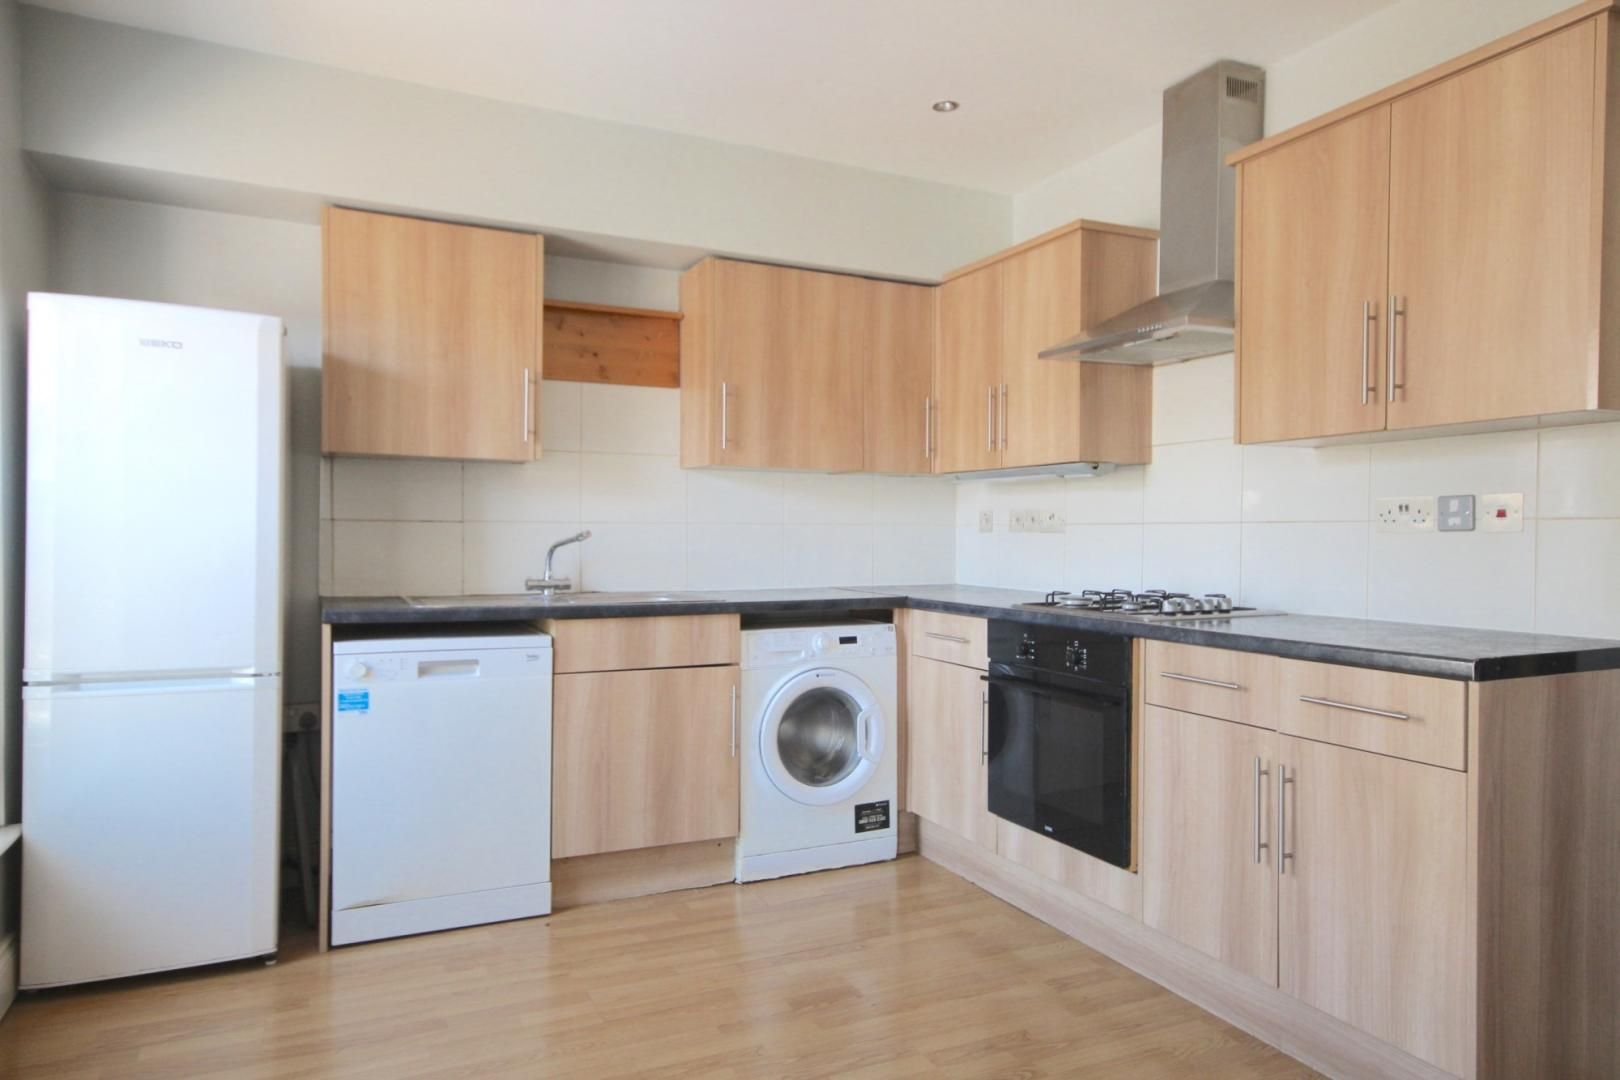 3 bed flat to rent in High Street, SE25